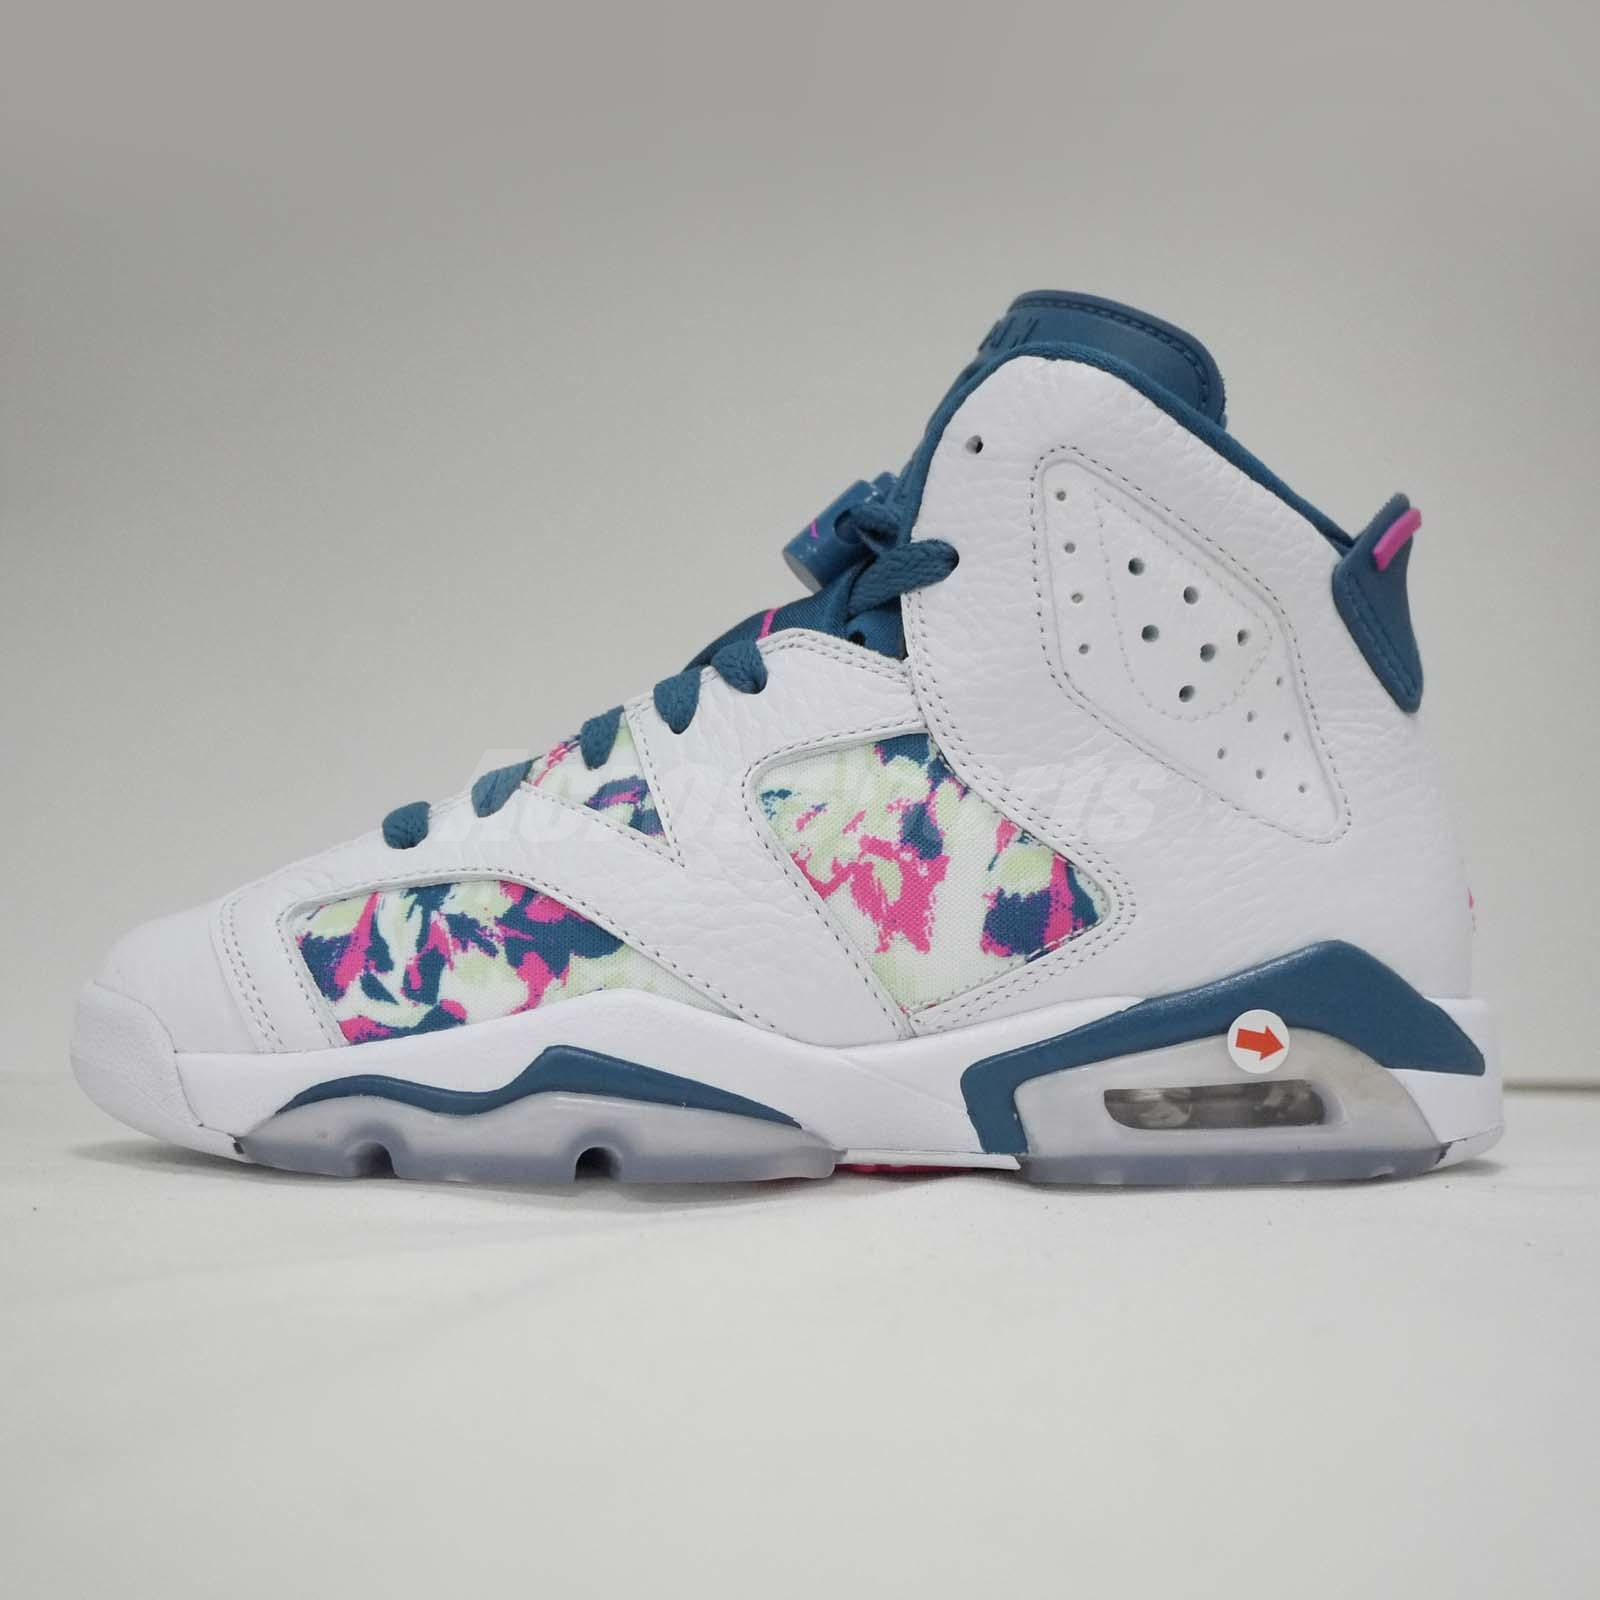 25b217b4ff7497 Nike Air Jordan 6 Retro GG VI Left Foot With Discoloration Kid Shoes  543390-153